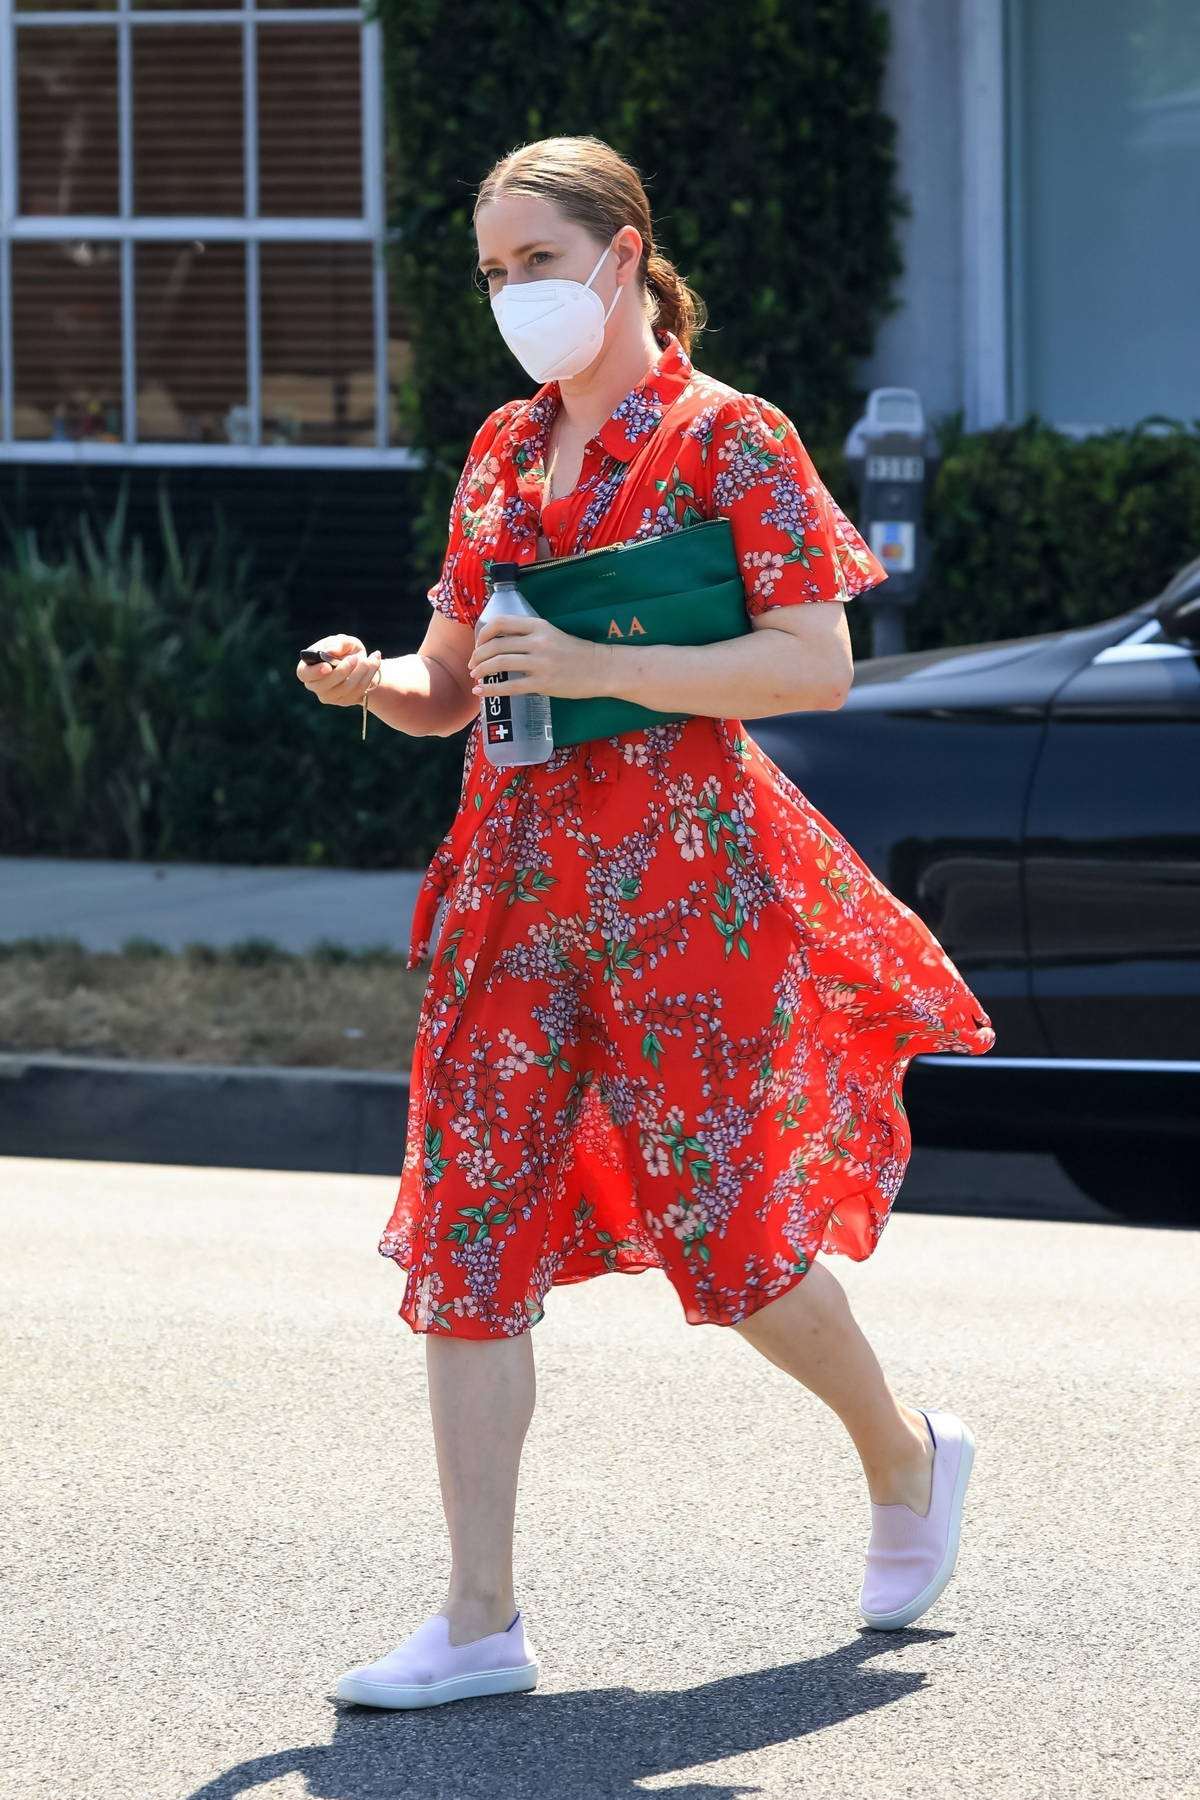 Amy Adams looks lovely in a red floral print dress and pink sneakers while out running errands in Beverly Hills, California